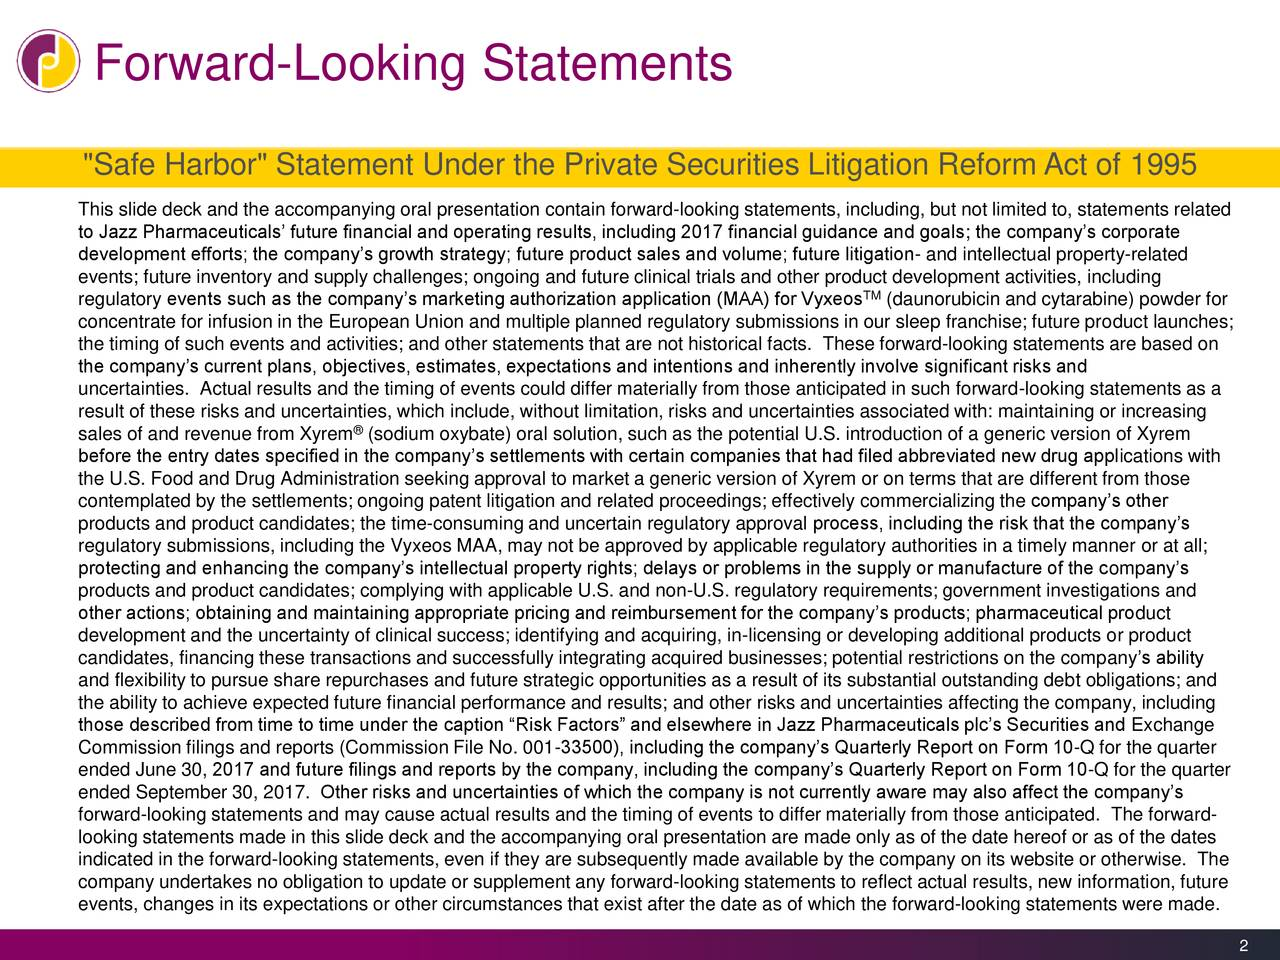 """""""Safe Harbor"""" Statement Under the Private Securities Litigation Reform Act of 1995 This slide deck and the accompanying oral presentation contain forward-looking statements, including, but not limited to, statements related to Jazz Pharmaceuticals' future financial and operating results, including 2017 financial guidance and goals; the company's corporate development efforts; the company's growth strategy; future product sales and volume; future litigation- and intellectual property-related events; future inventory and supply challenges; ongoing and future clinical trials and other product development activities, including regulatory events such as the company's marketing authorization application (MAA) for VyxeosTM (daunorubicin and cytarabine) powder for concentrate for infusion in the European Union and multiple planned regulatory submissions in our sleep franchise; future product launches; the timing of such events and activities; and other statements that are not historical facts. These forward-looking statements are based on the company's current plans, objectives, estimates, expectations and intentions and inherently involve significant risks and uncertainties. Actual results and the timing of events could differ materially from those anticipated in such forward-looking statements as a result of these risks and uncertainties, which include, without limitation, risks and uncertainties associated with: maintaining or increasing sales of and revenue from Xyrem (sodium oxybate) oral solution, such as the potential U.S. introduction of a generic version of Xyrem before the entry dates specified in the company's settlements with certain companies that had filed abbreviated new drug applications with the U.S. Food and Drug Administration seeking approval to market a generic version of Xyrem or on terms that are different from those contemplated by the settlements; ongoing patent litigation and related proceedings; effectively commercializing the company's other prod"""